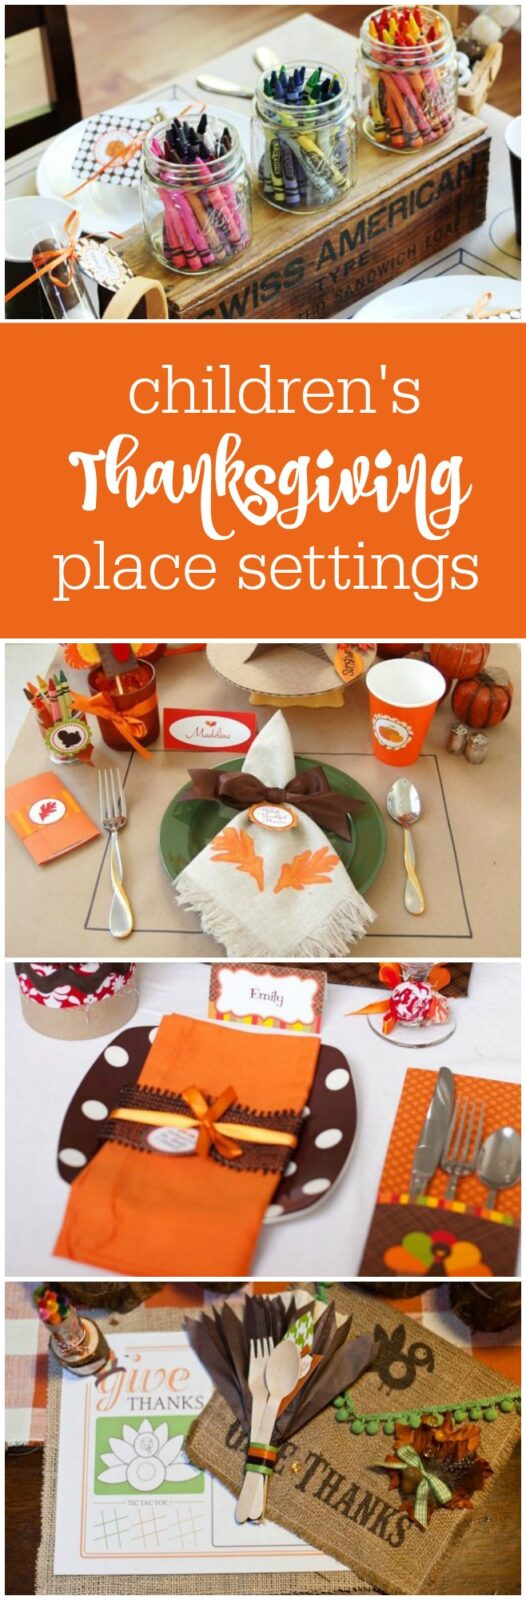 Children's Thanksgiving Placesettings - so much cute inspiration - featured on The Party Teacher